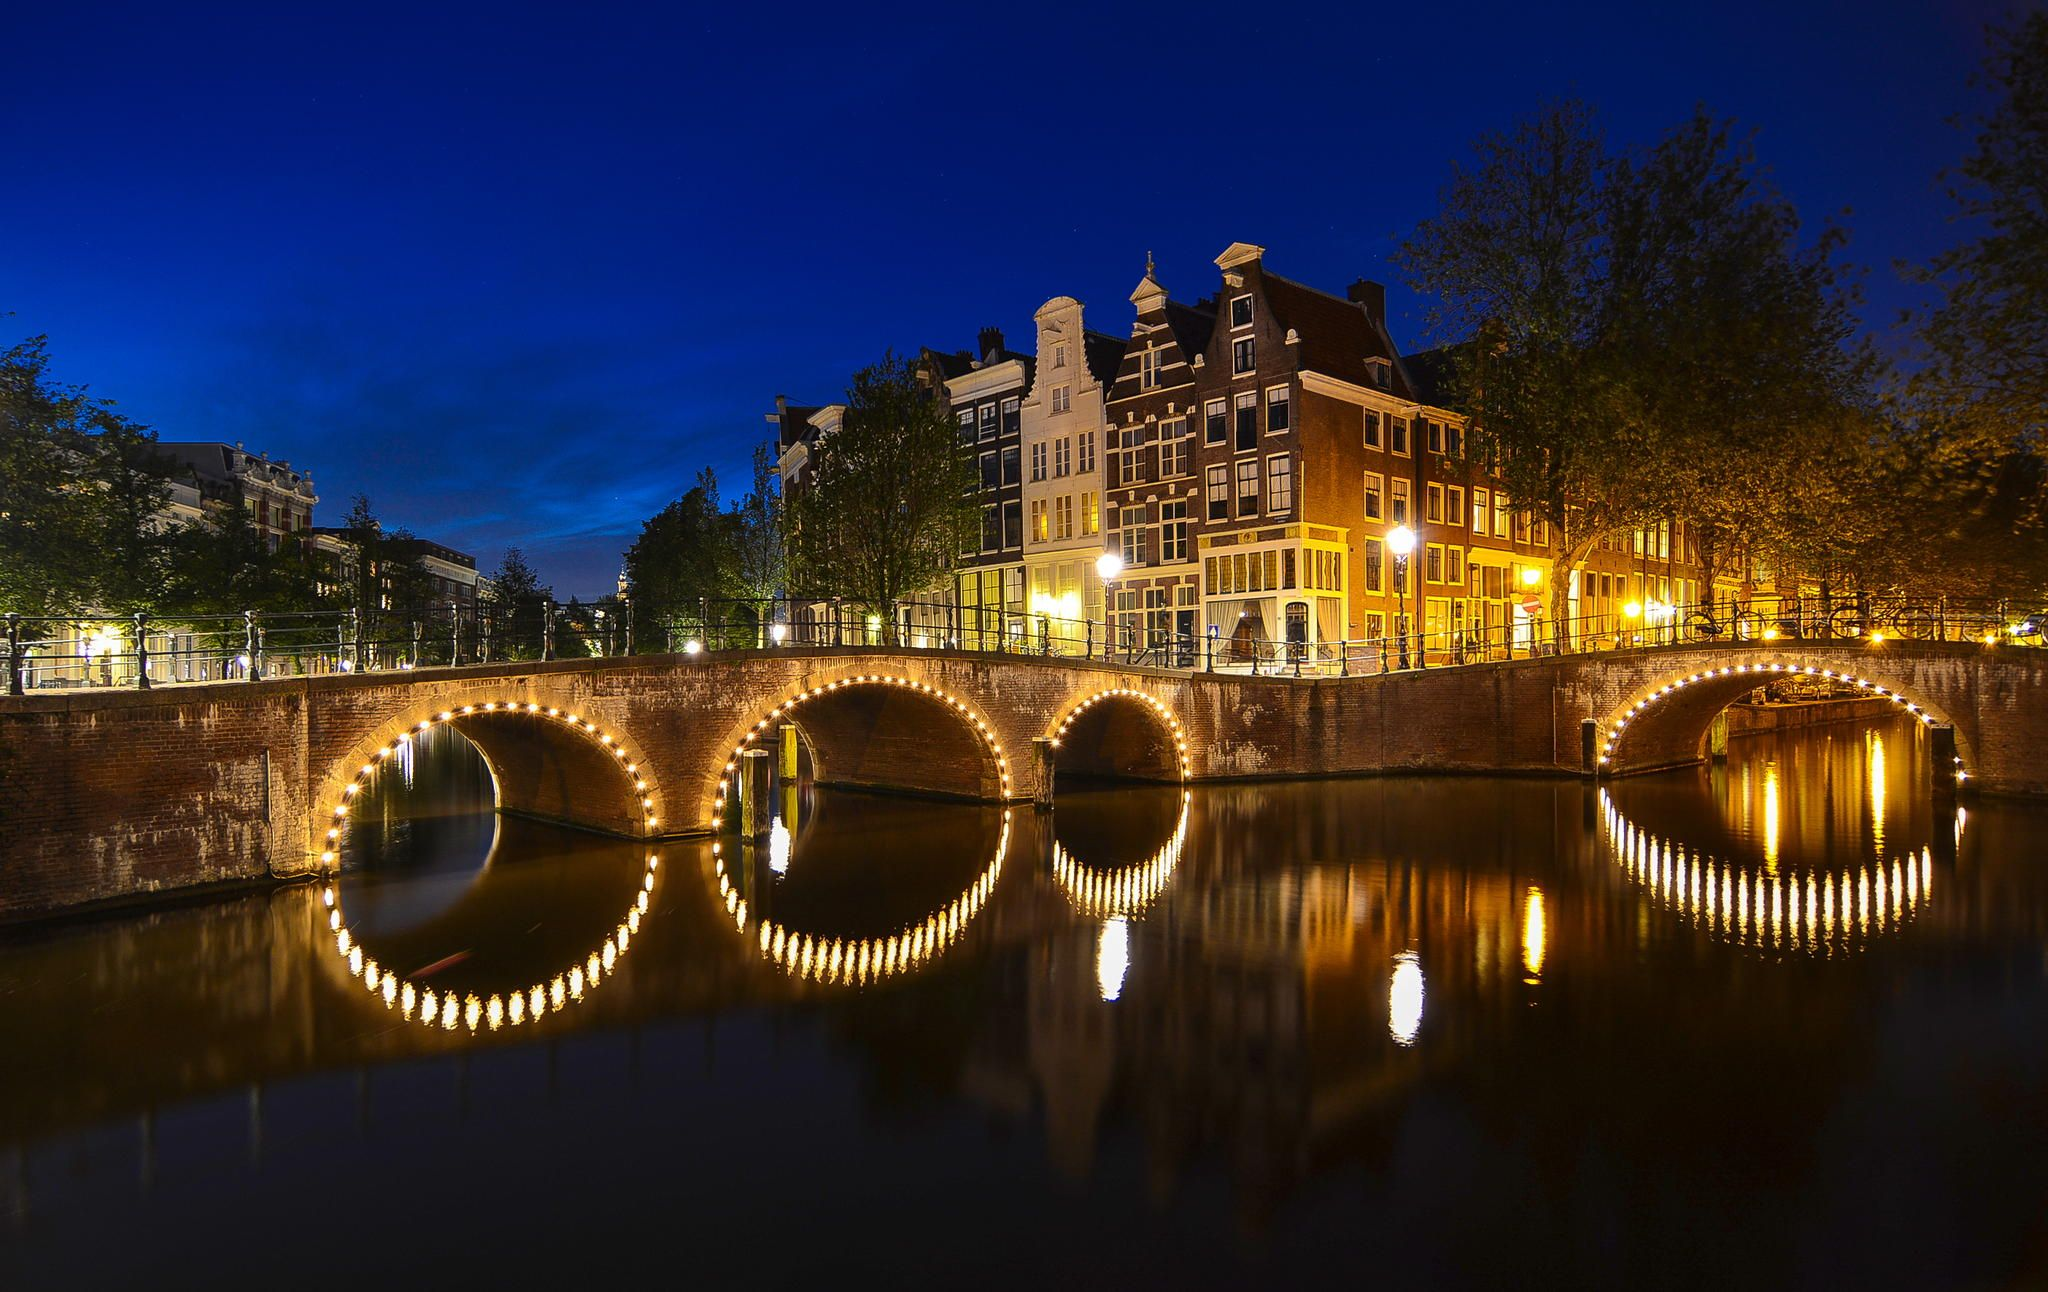 Amsterdam's Canal by Angel  Flores on 500px